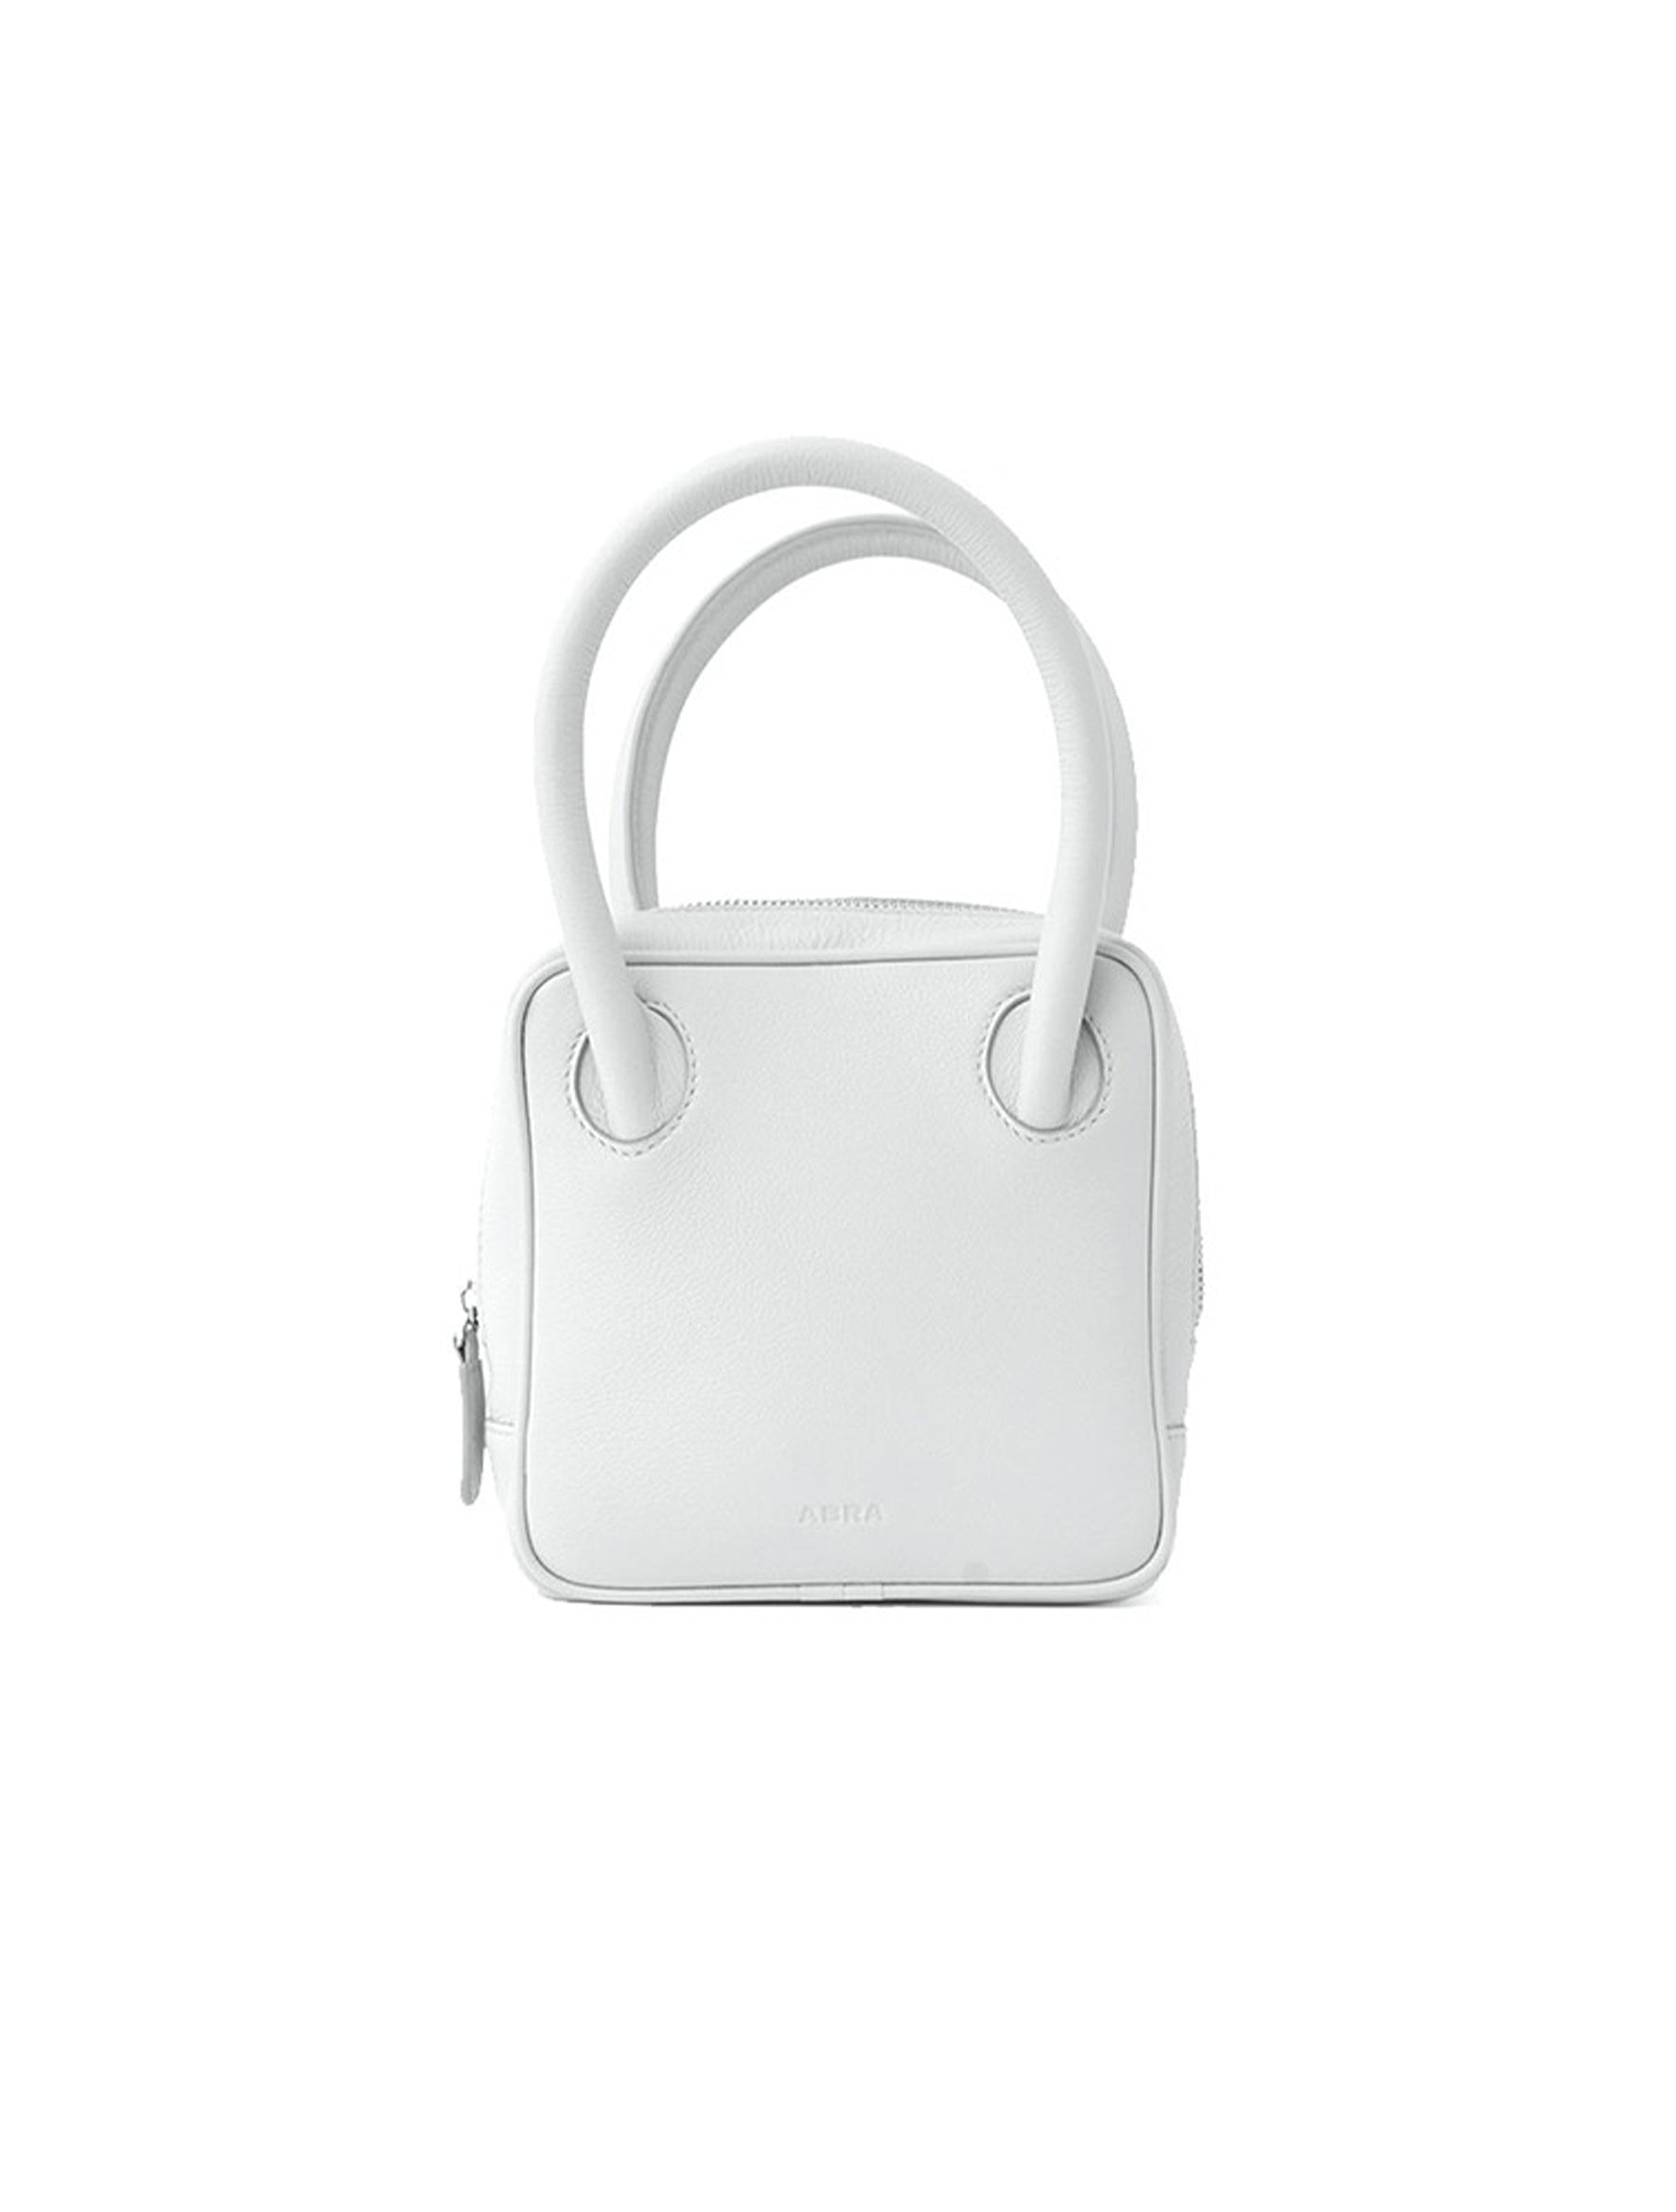 ABRA White Square Bag